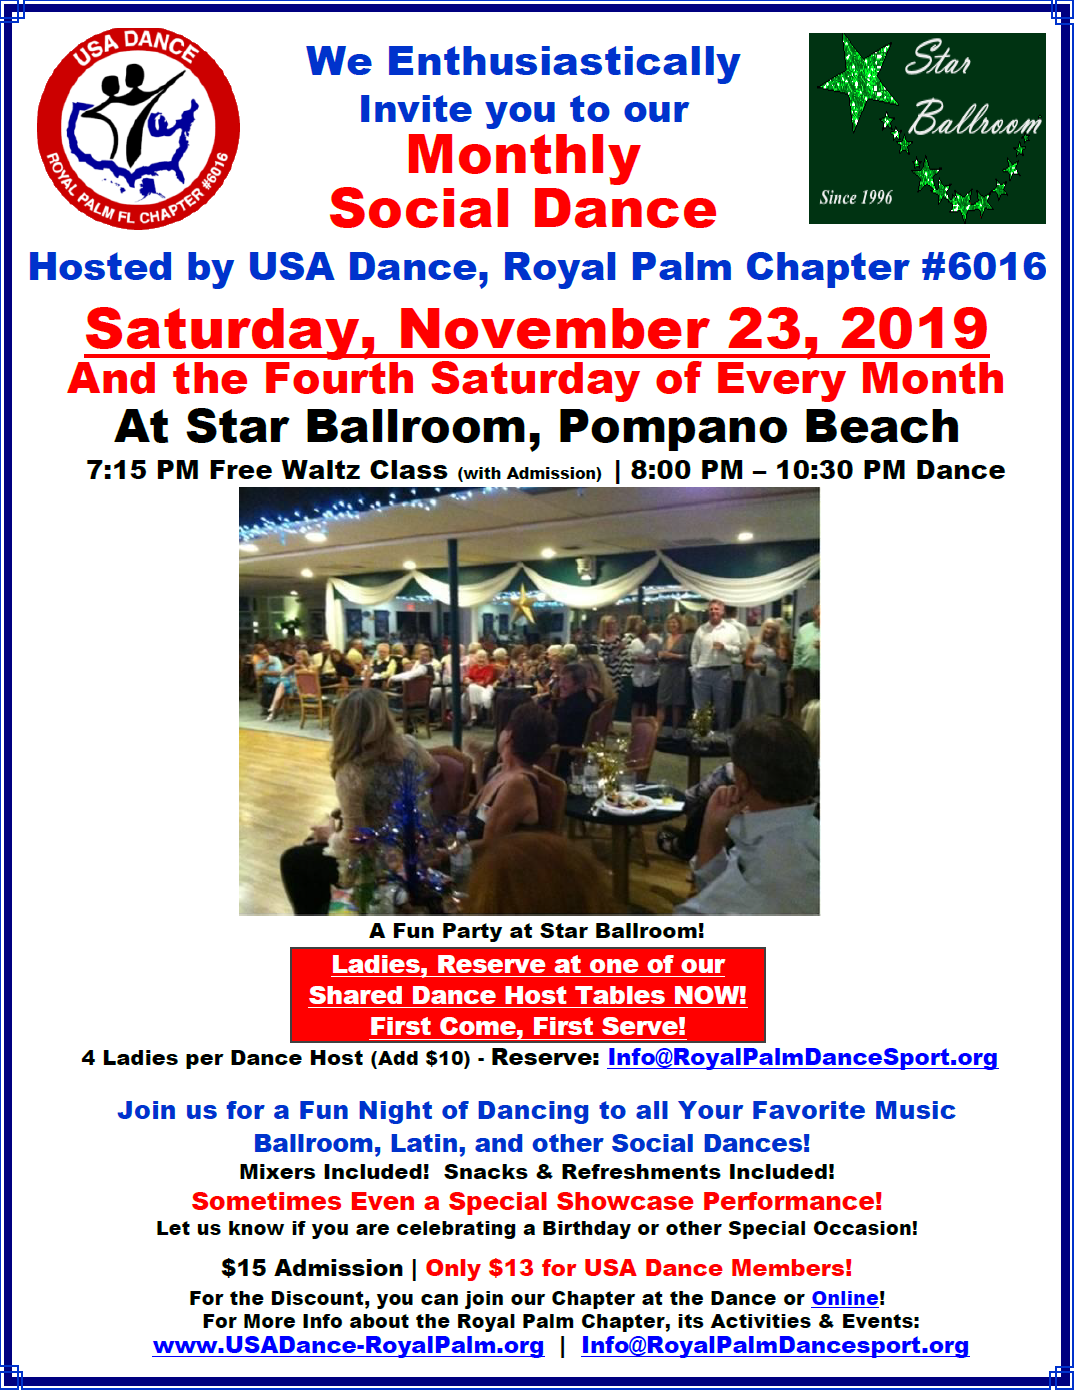 USA Dance, Royal Palm Chapter Monthly Dance: Saturday, November 23 & 4th Saturday Every Month at Star Ballroom, Pompano Beach, FL